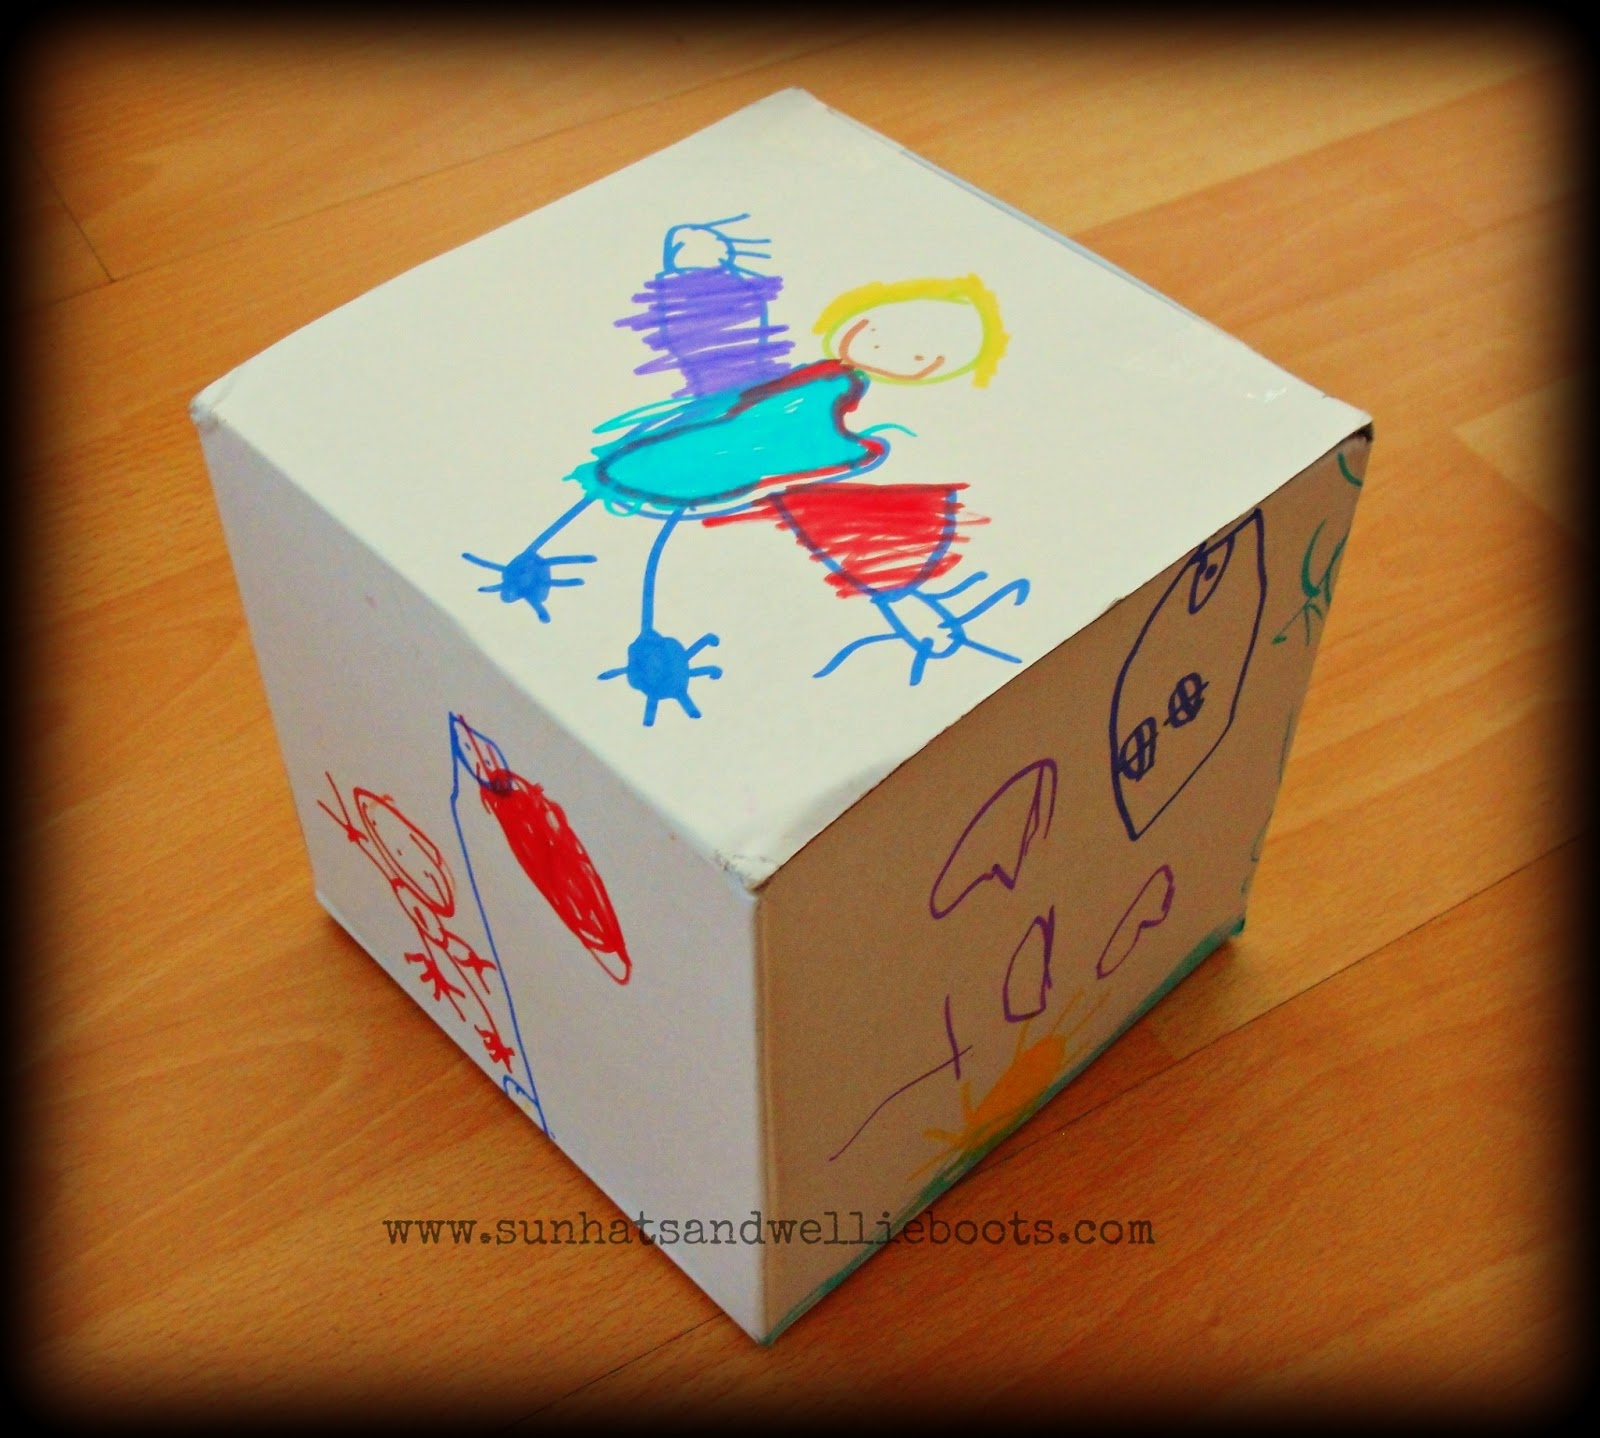 Sun Hats & Wellie Boots: Giant Story Cubes - Explore